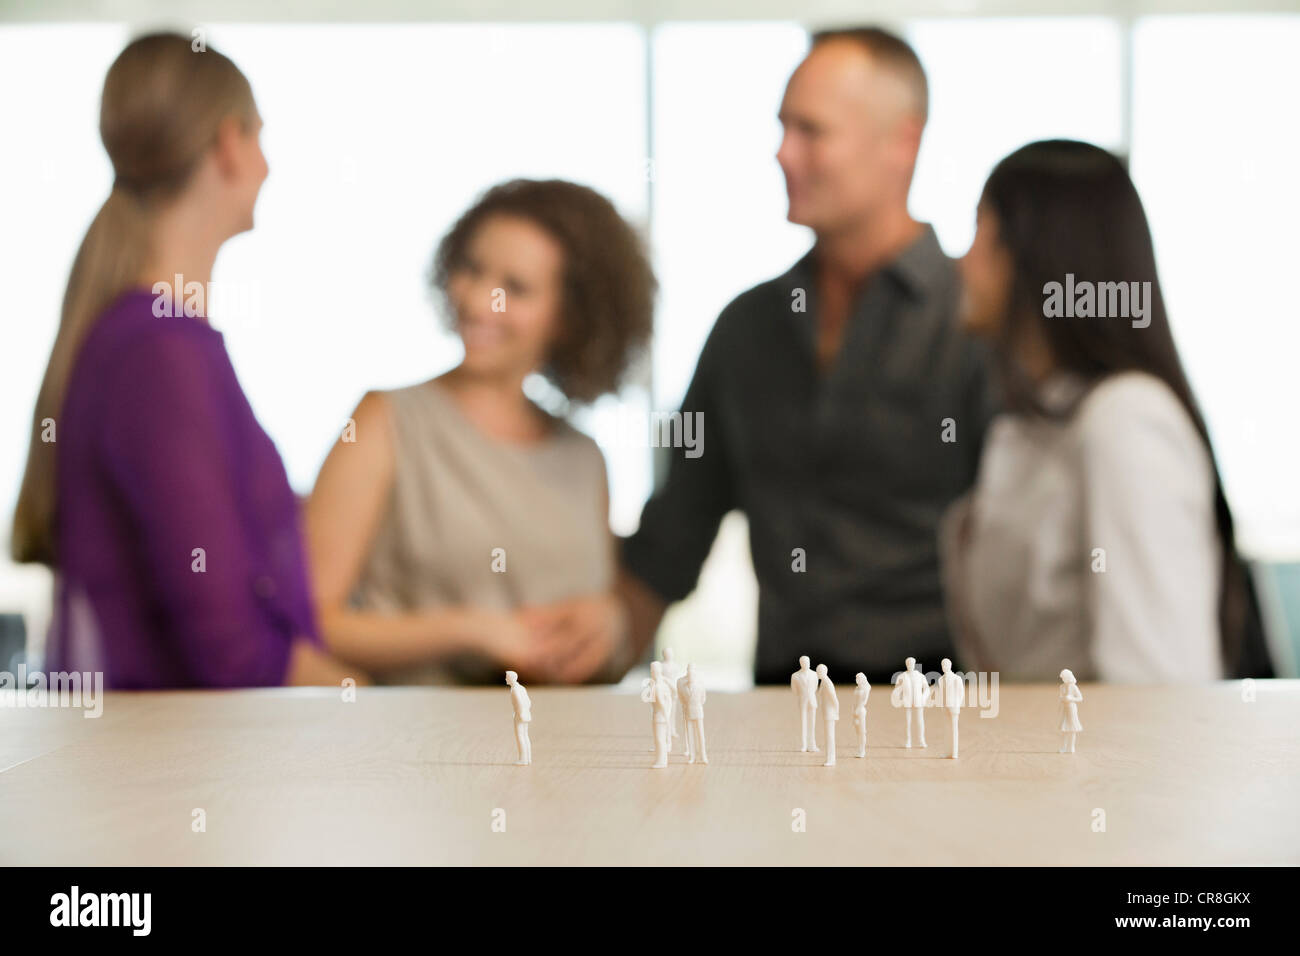 Young architect sitting at desk with model figures - Stock Image